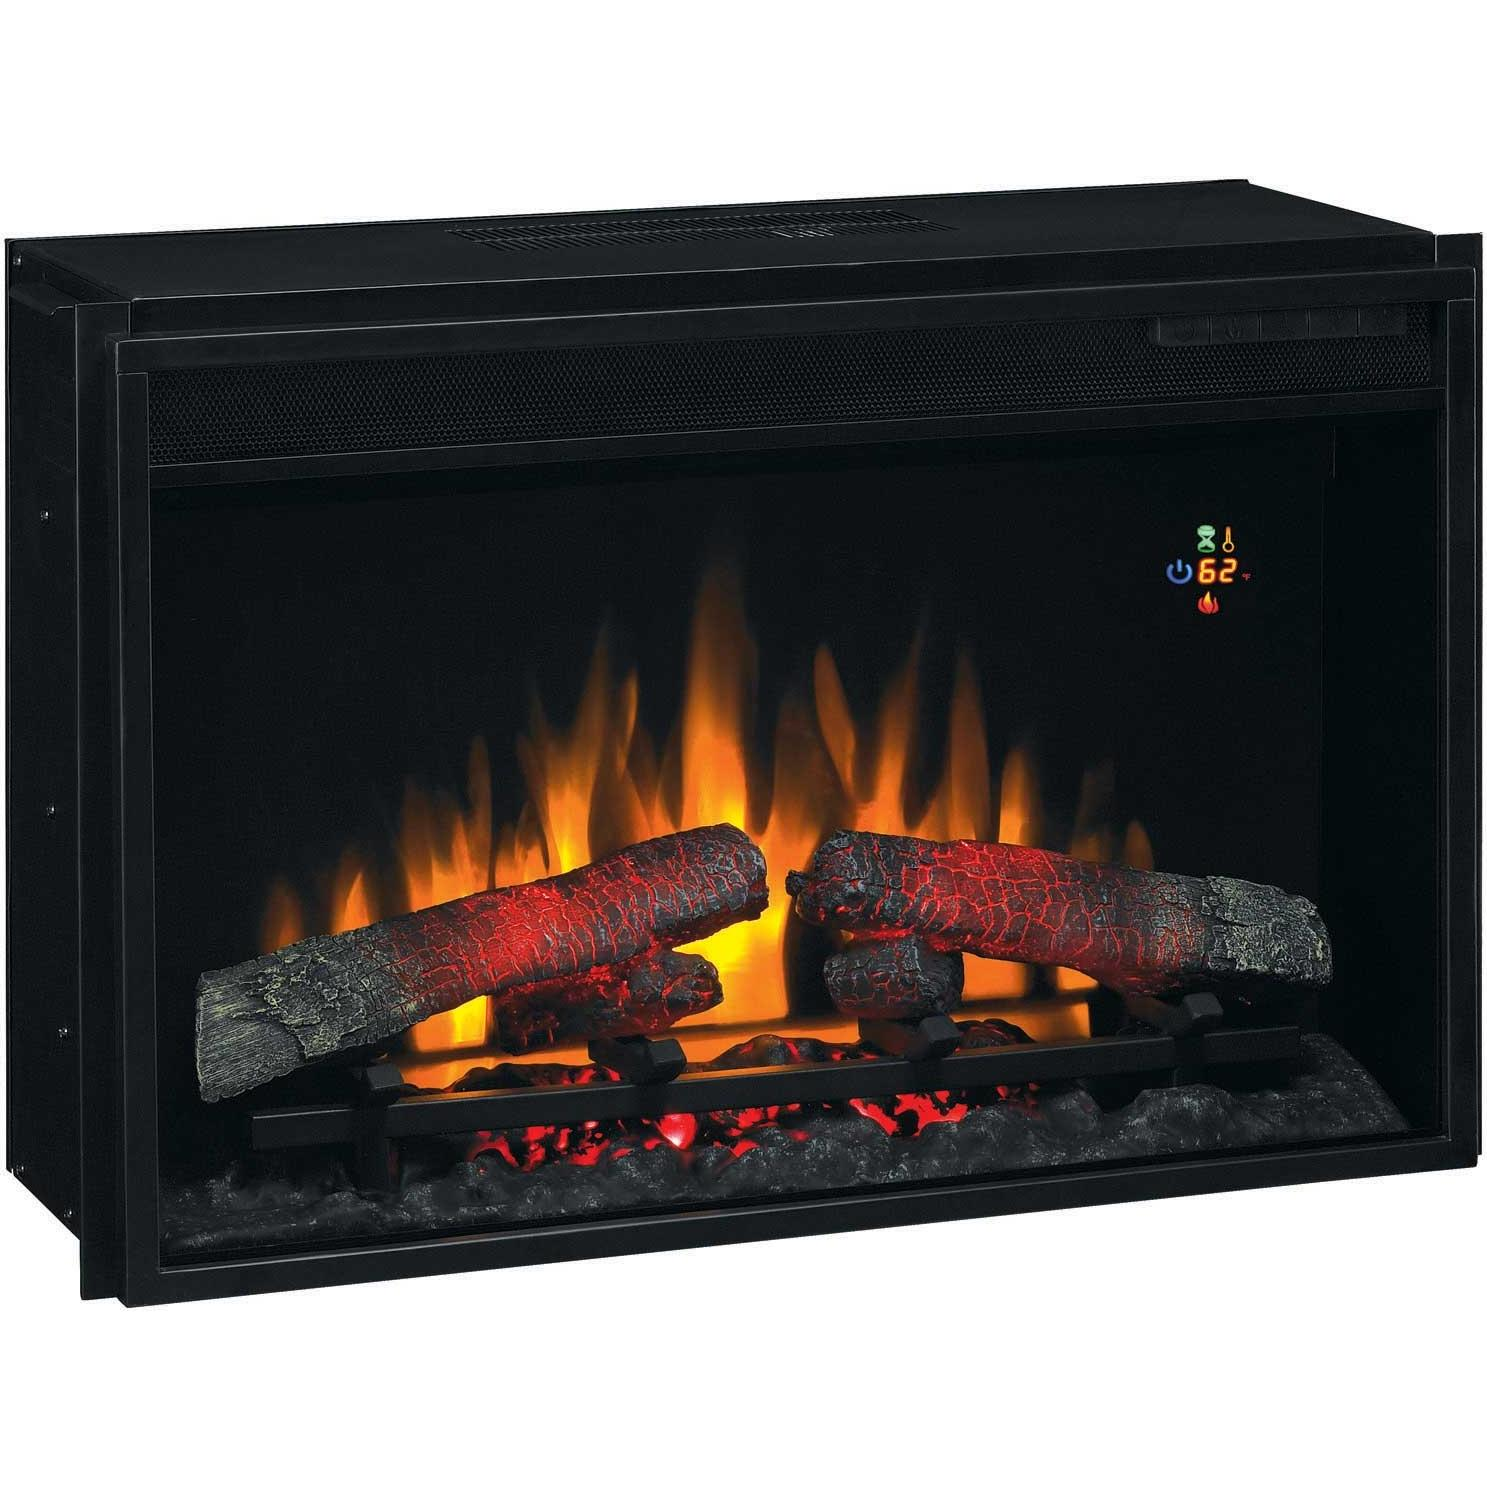 ClassicFlame 26EF022GRA 26 Inch Fixed Front Electric Fireplace Insert With Backlit Display And Remote - Black